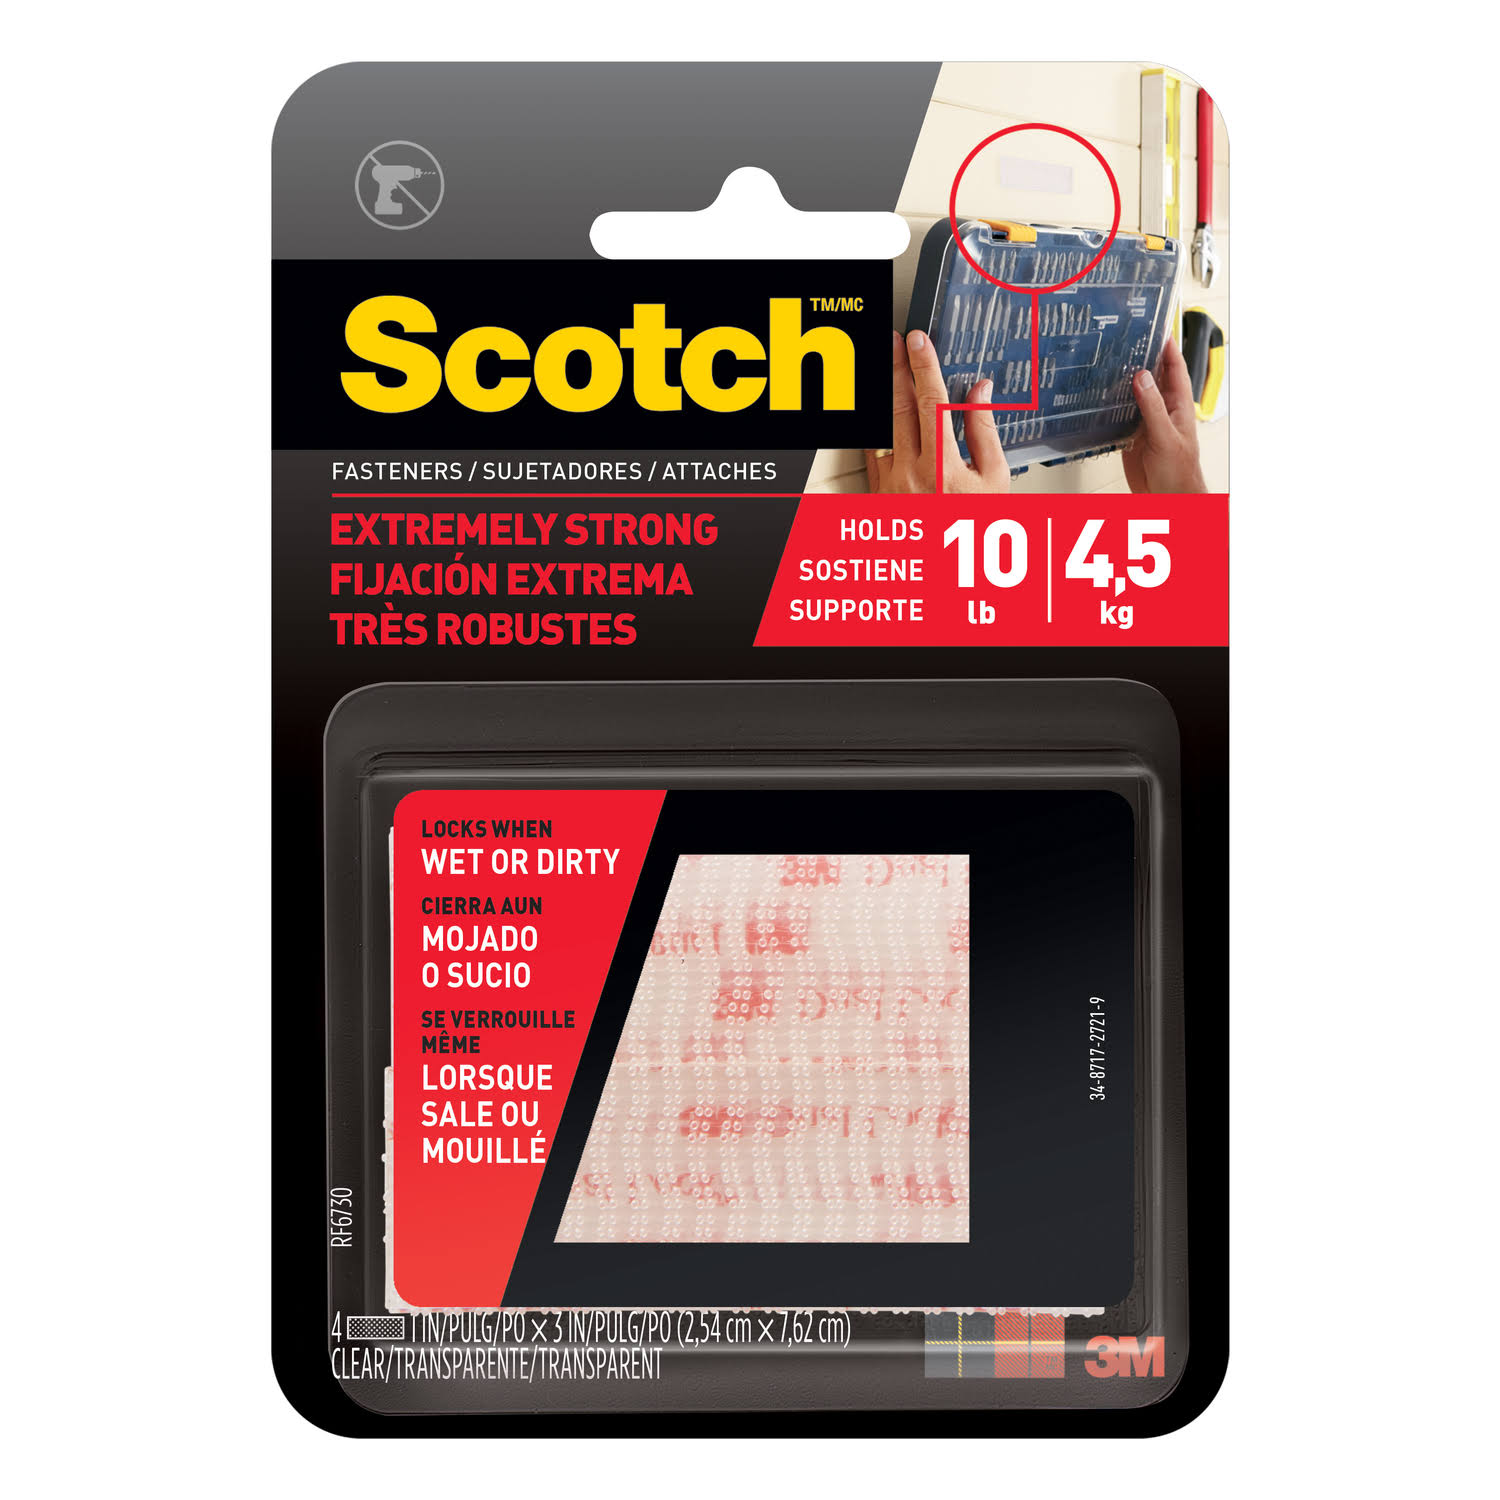 3M Scotch All Weather Fasteners